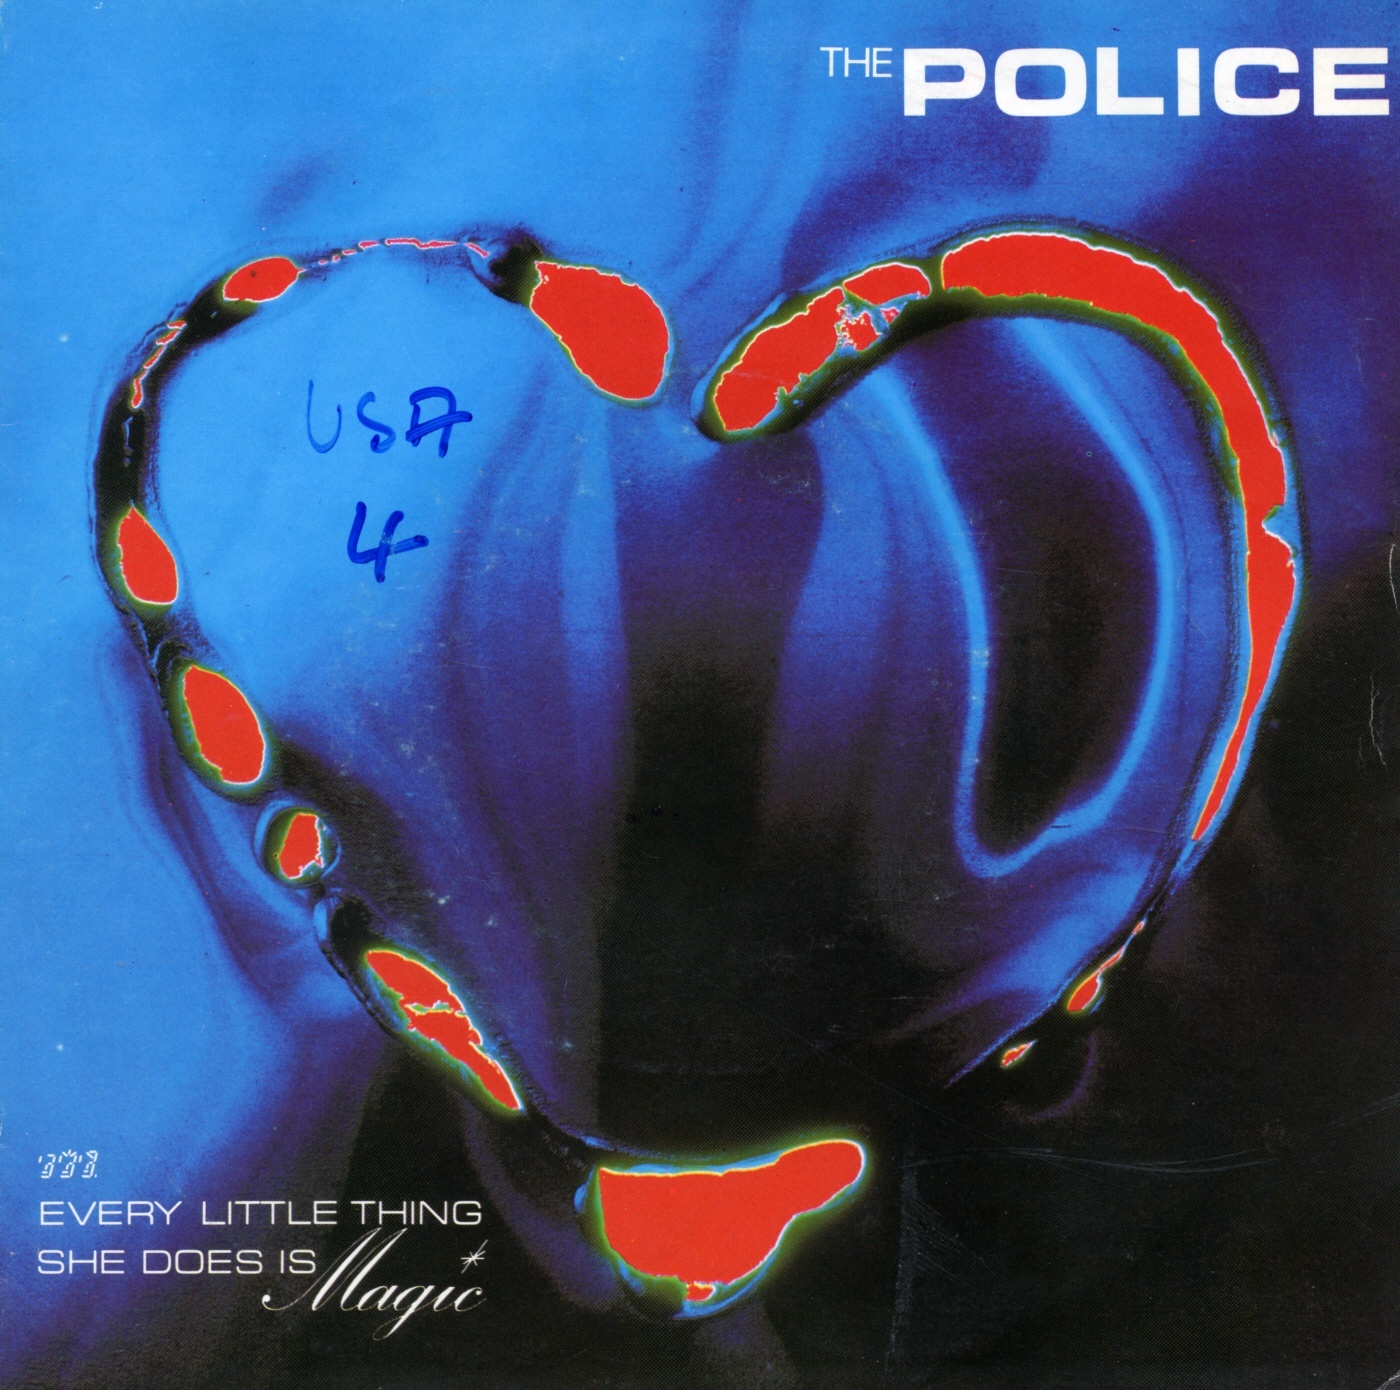 Every little thing she does is magic (Foto: The Police)